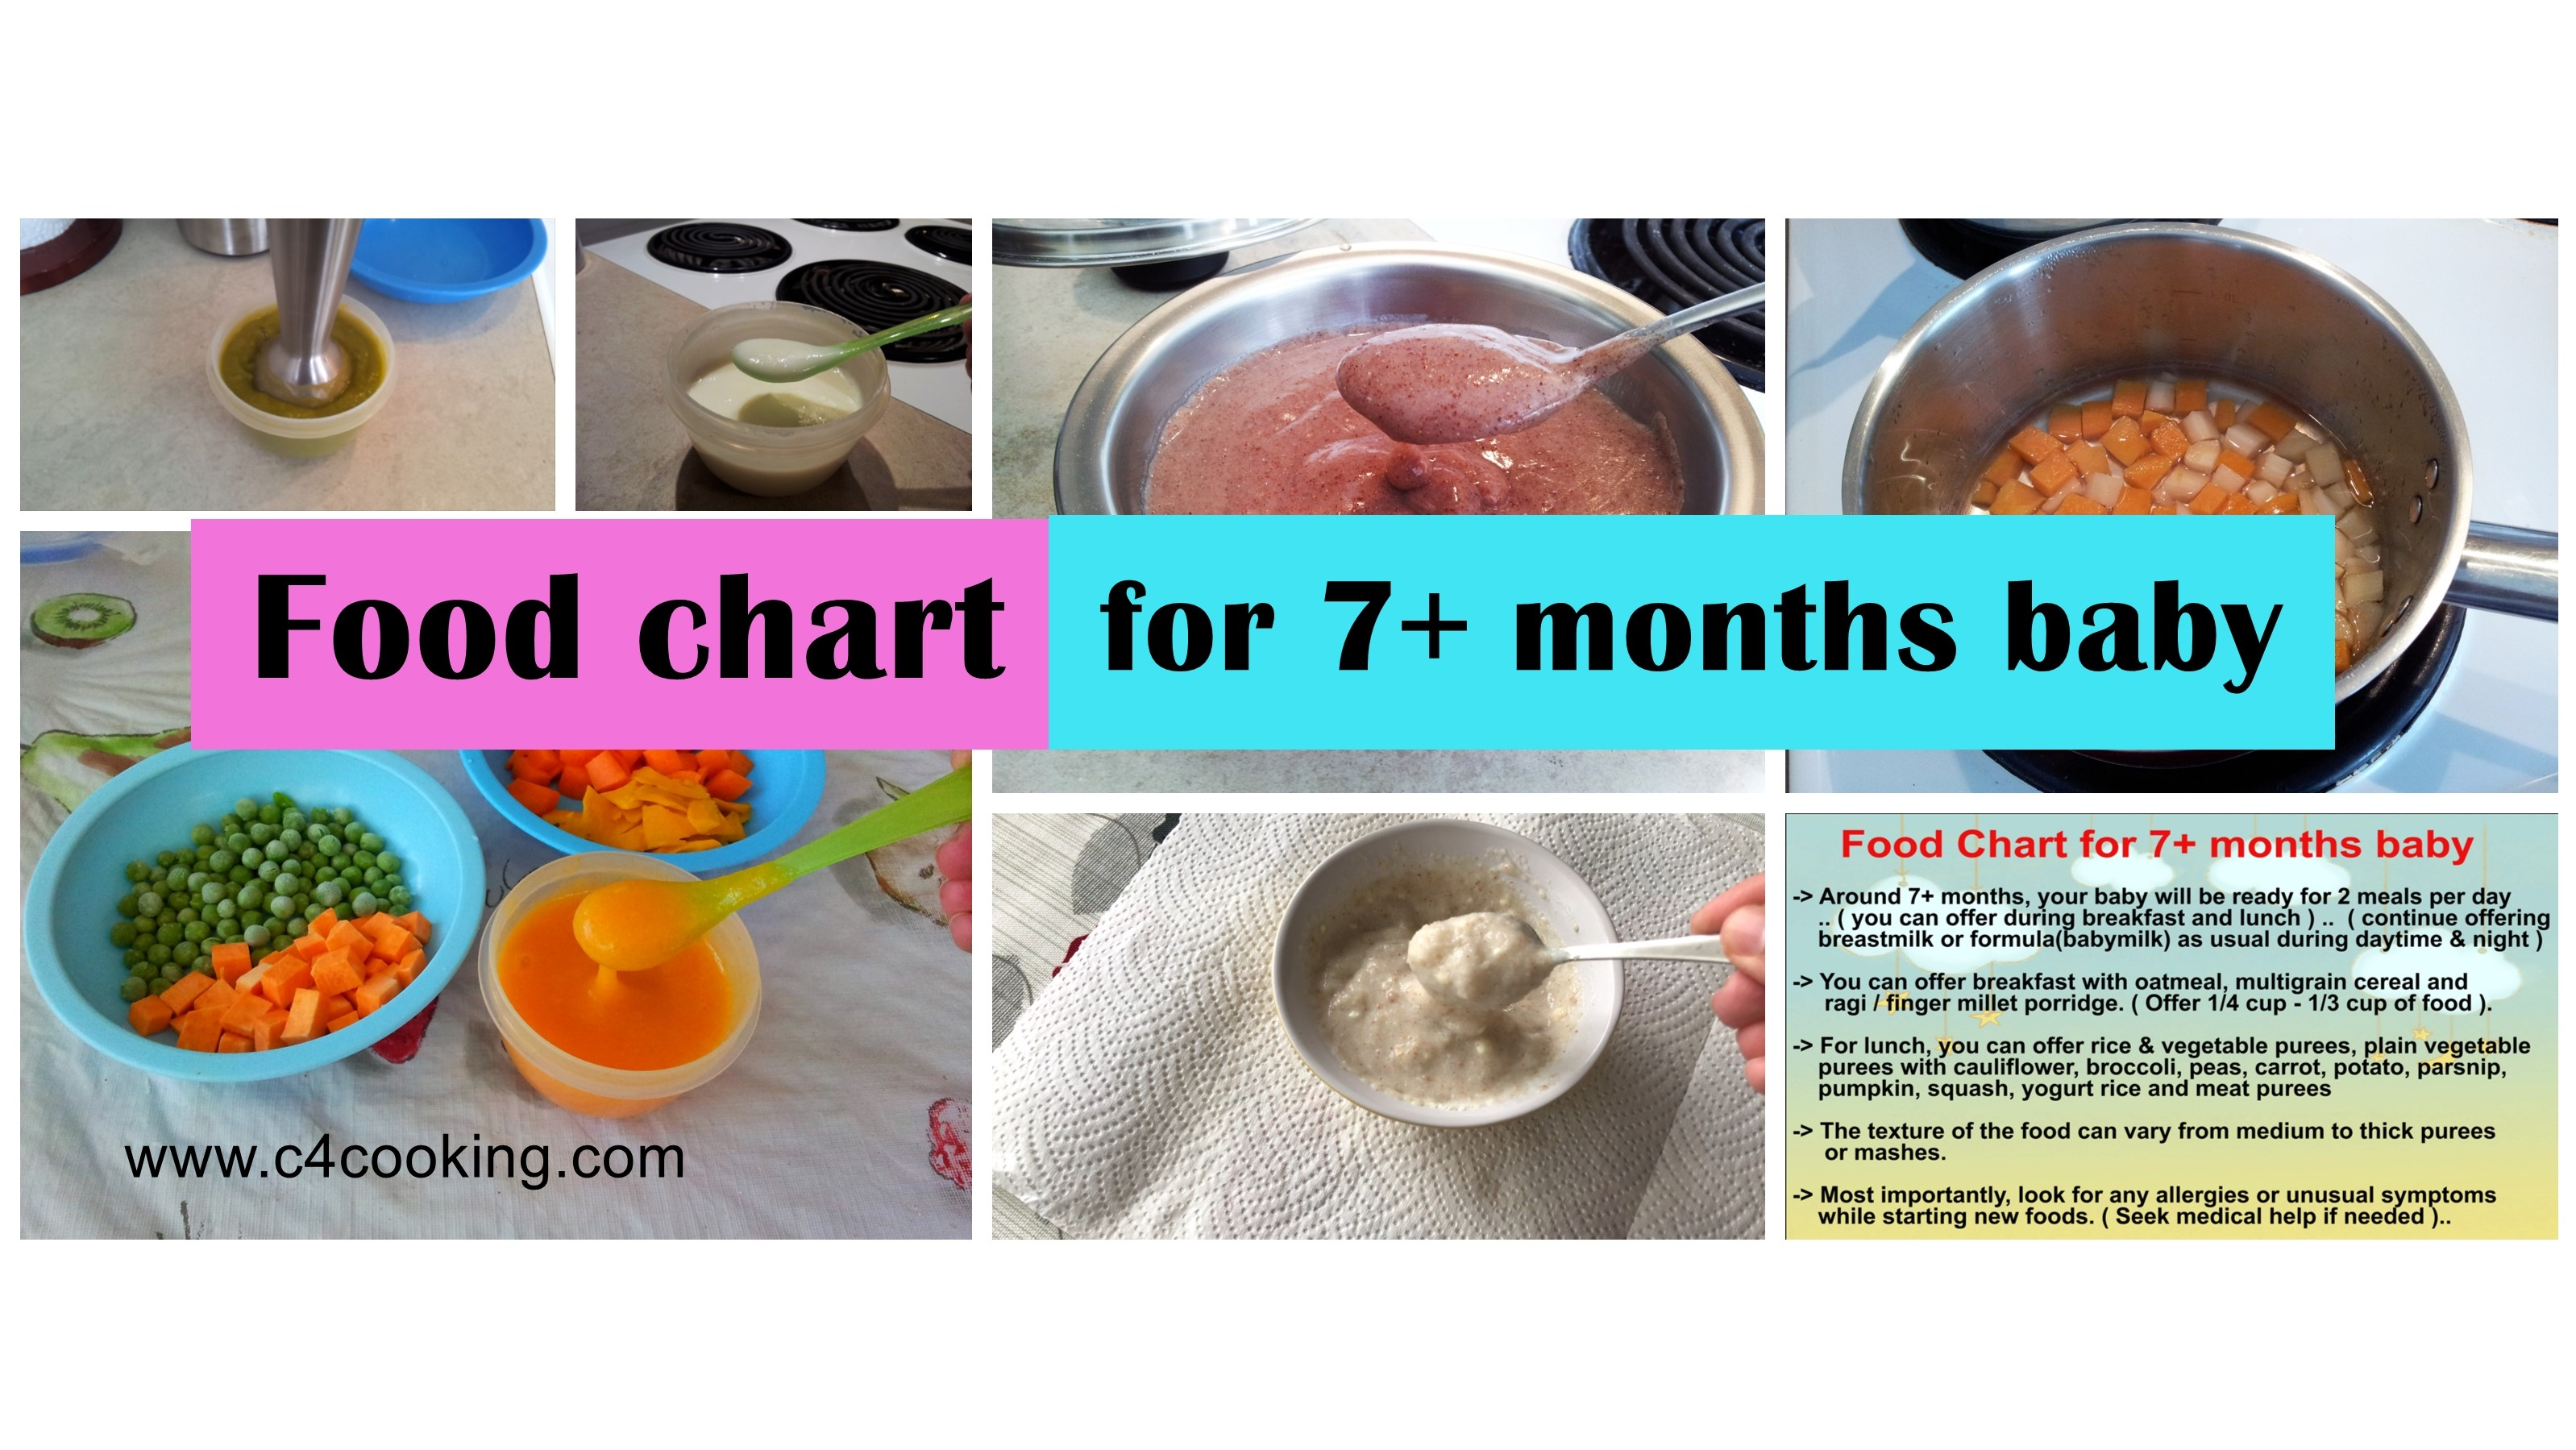 foodchart for 7months baby, 7months babyfood